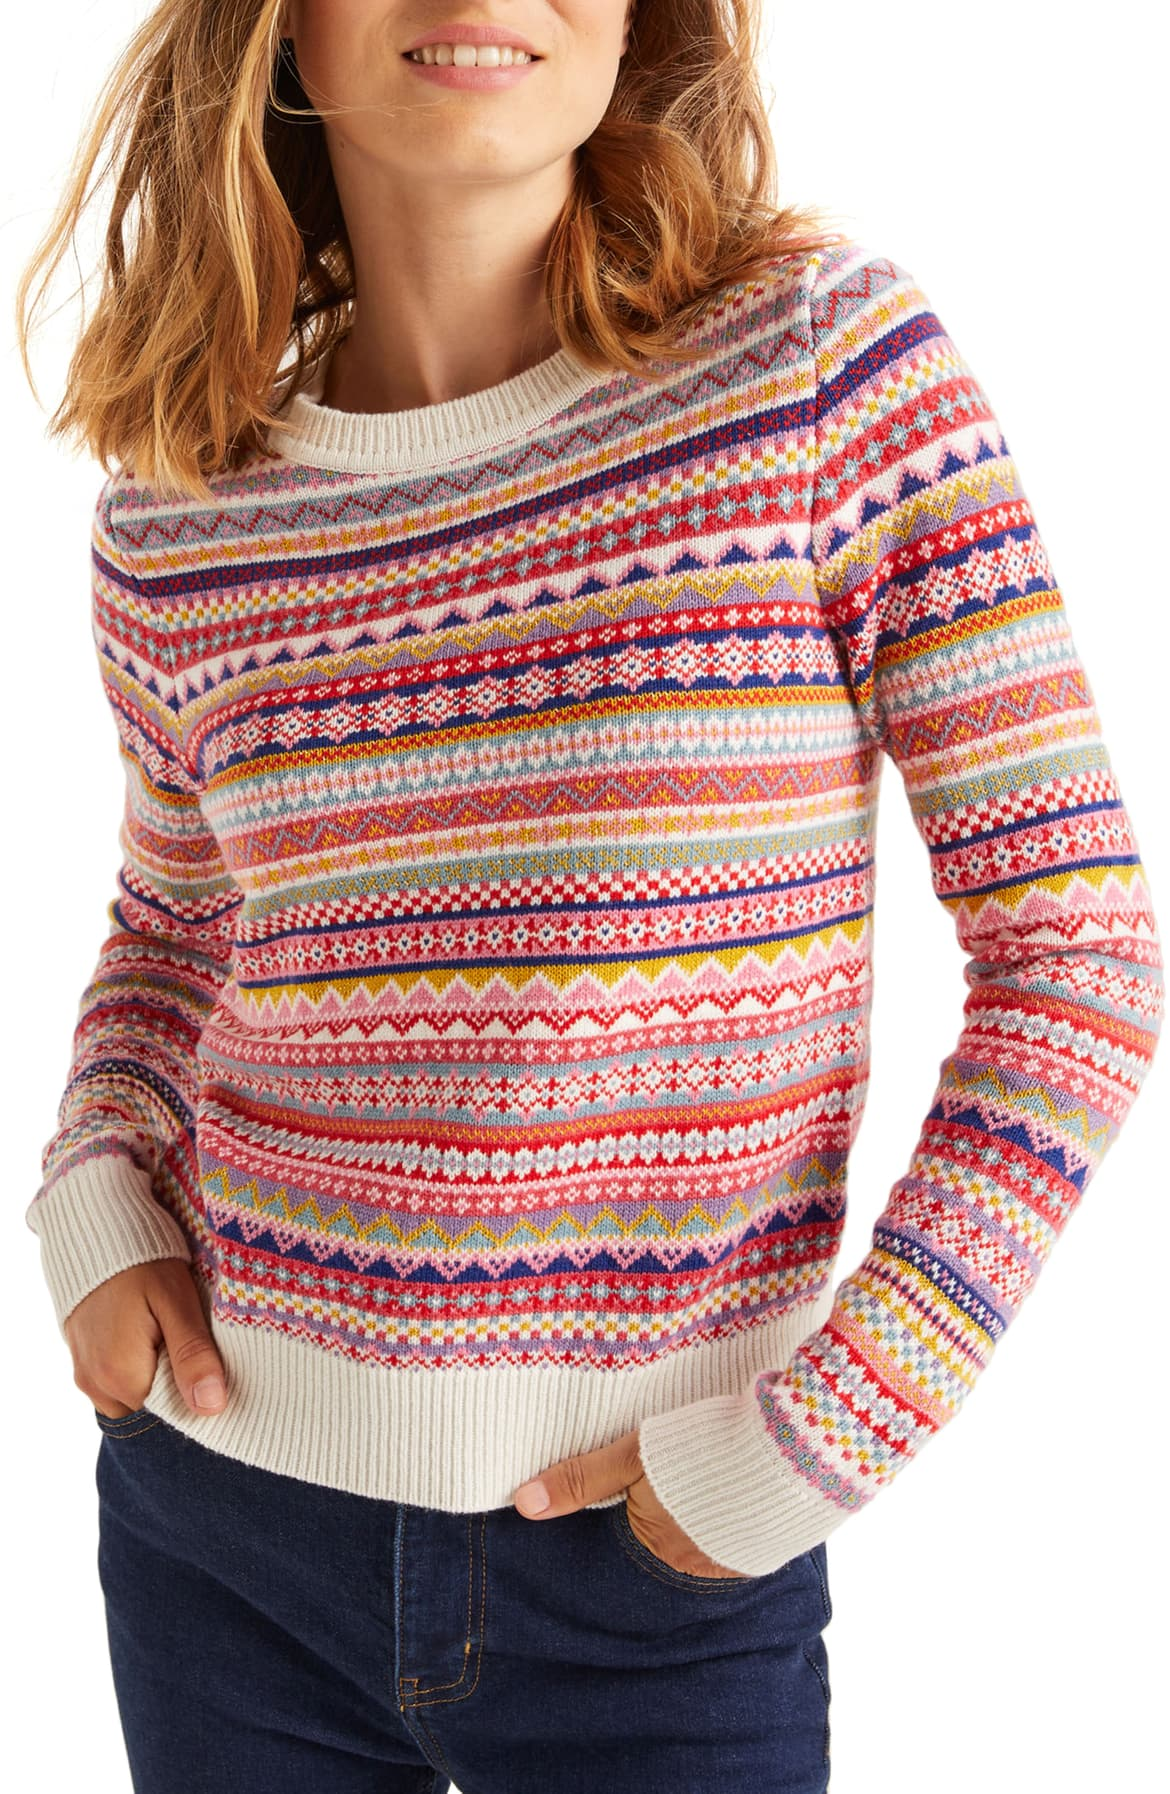 boden colorful striped sweater nordstrom